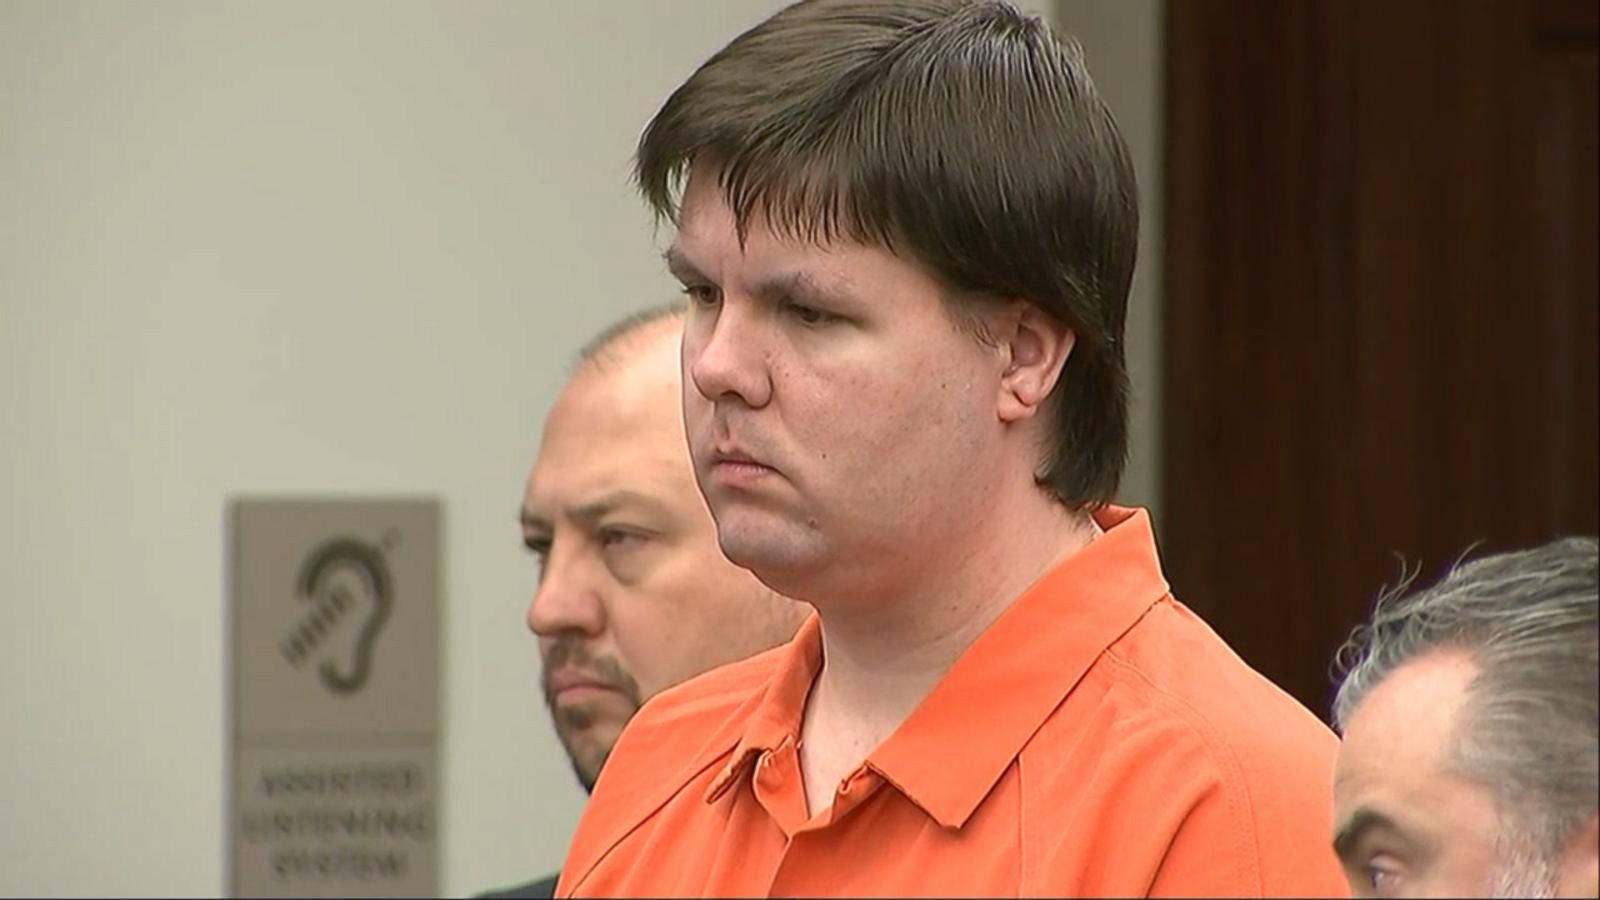 VIDEO: Hot Car Death Dad Sentenced to Life Without Parole